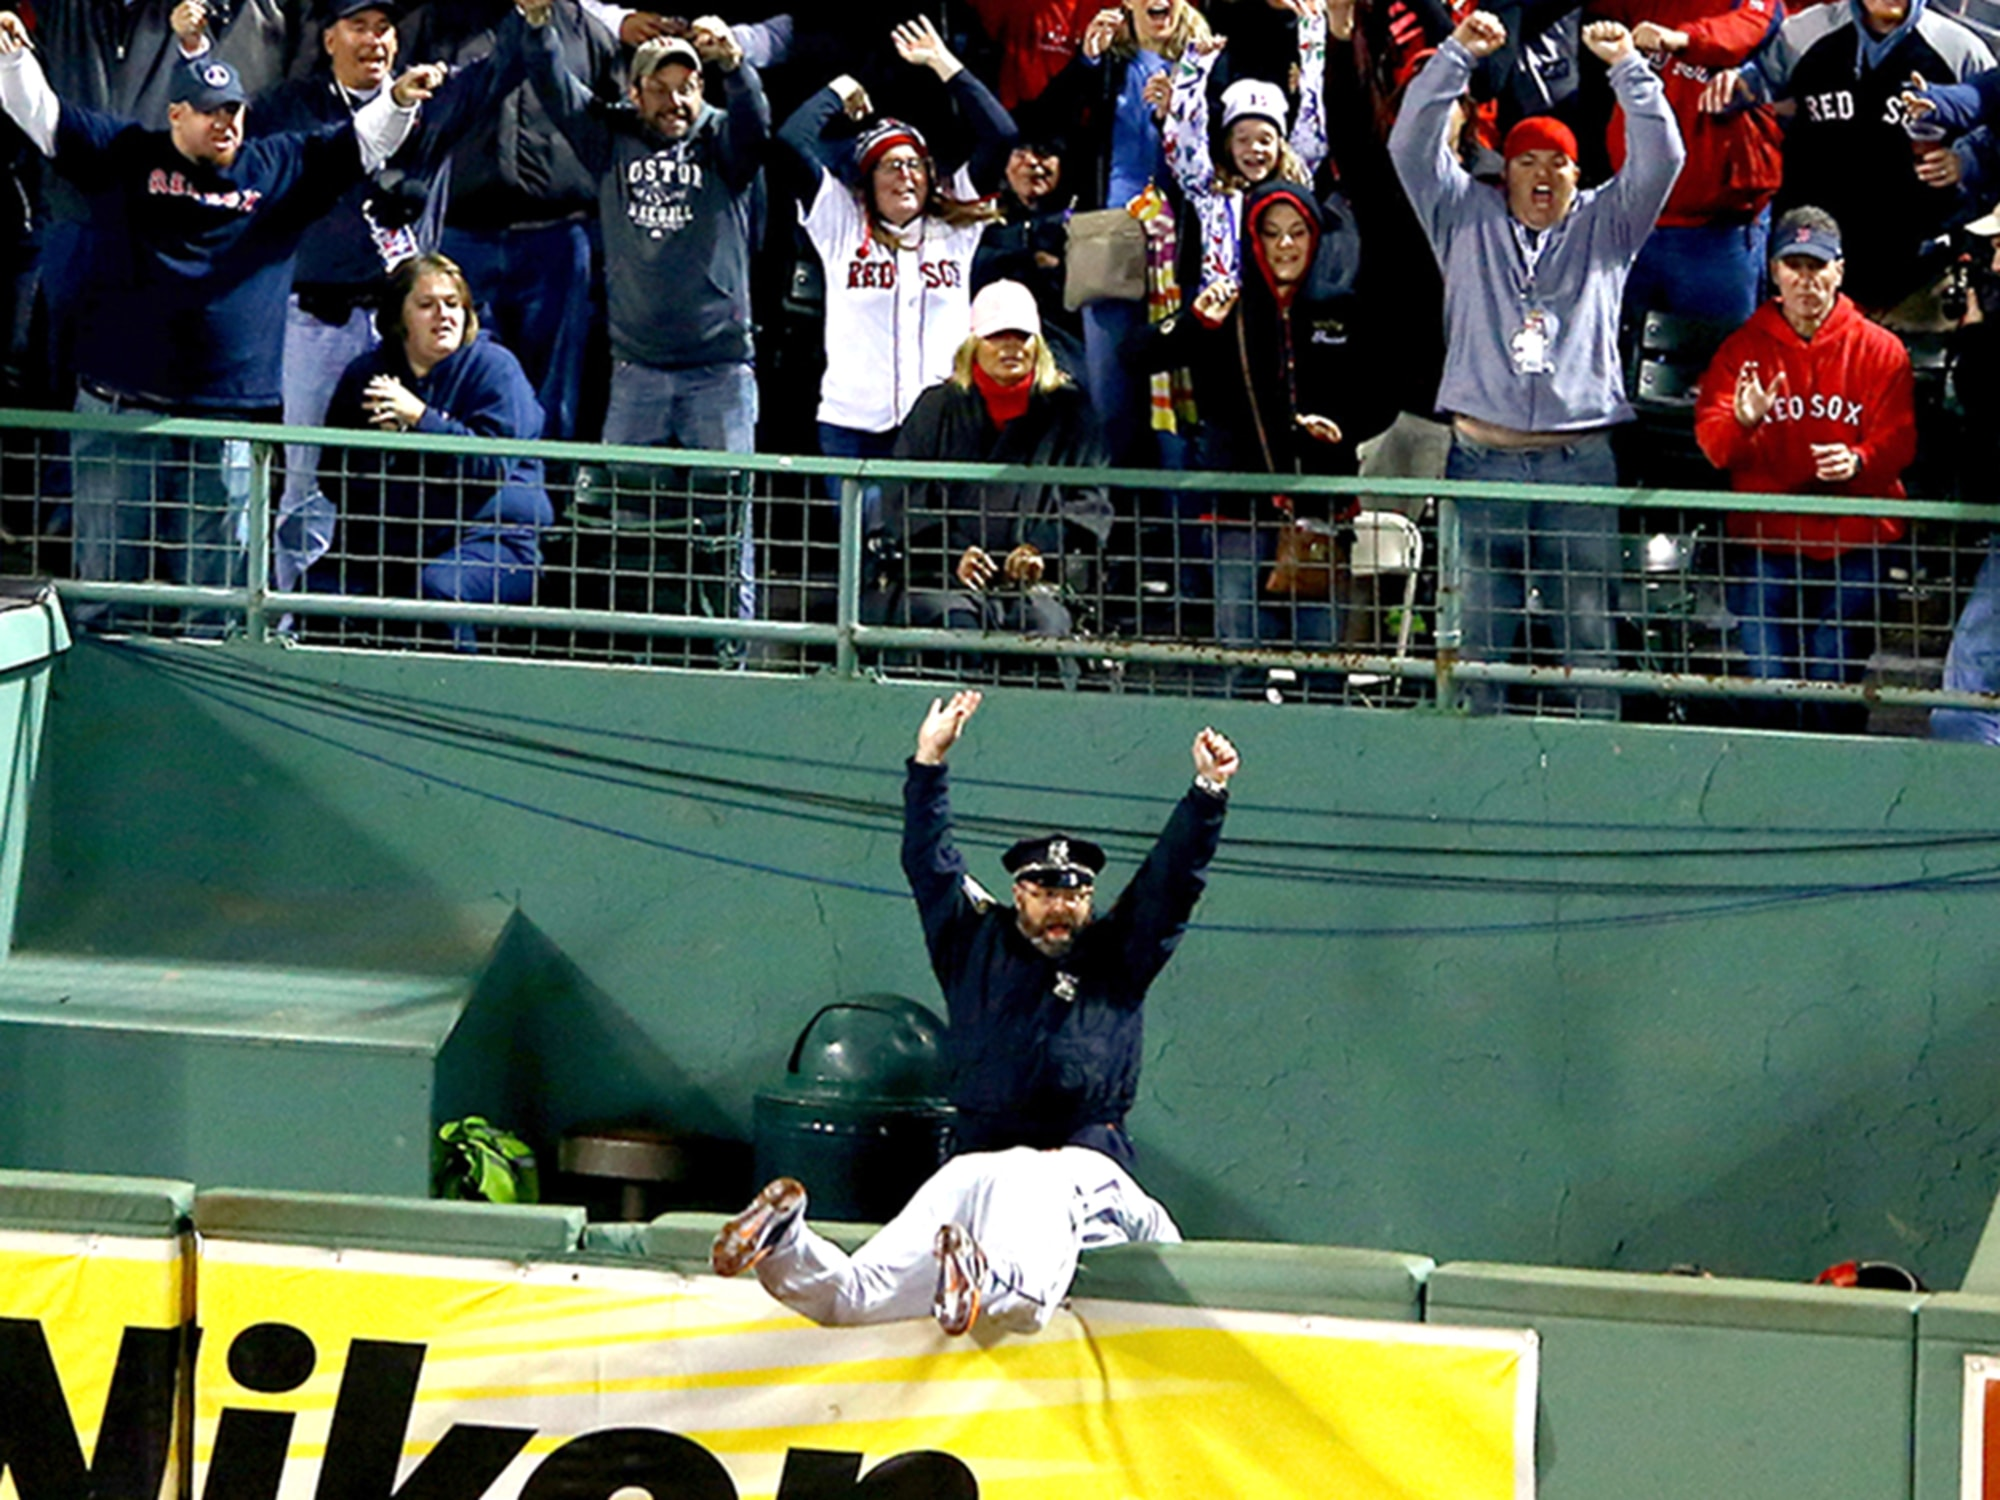 8C9358990-tdy-131014-red-sox-police-teas